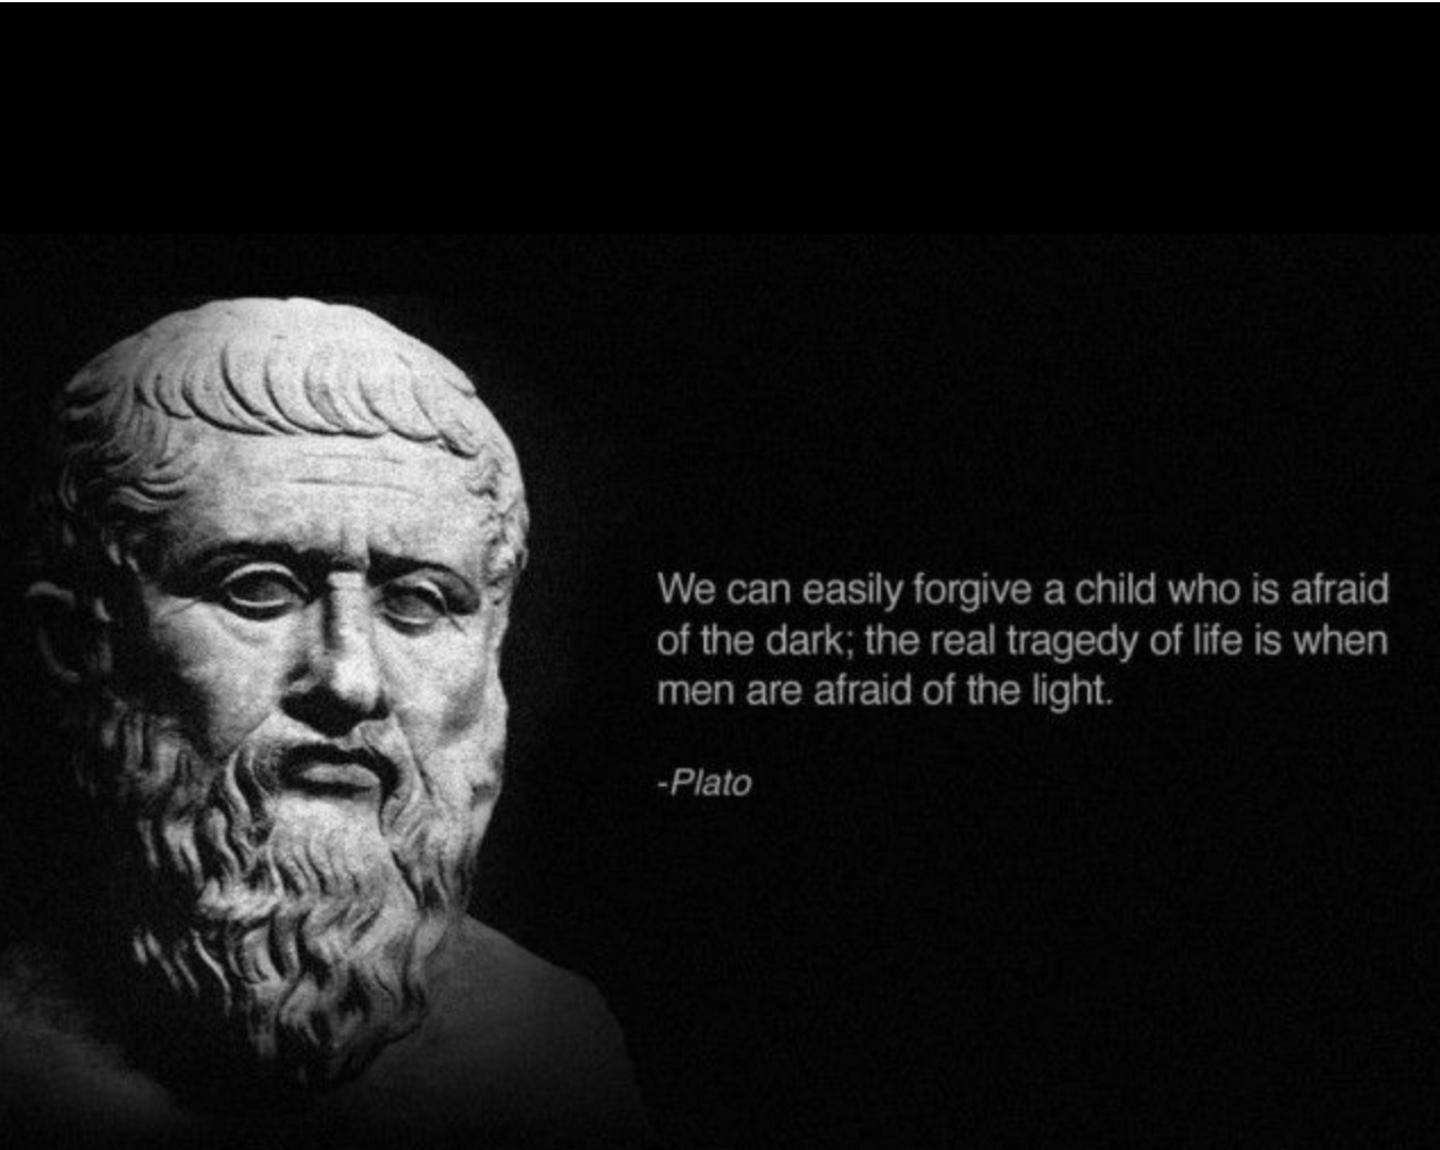 We can easily forgive a child who is afraid of the dark; the real tragedy of life is when men are afraid of the light. - P/a to https://inspirational.ly